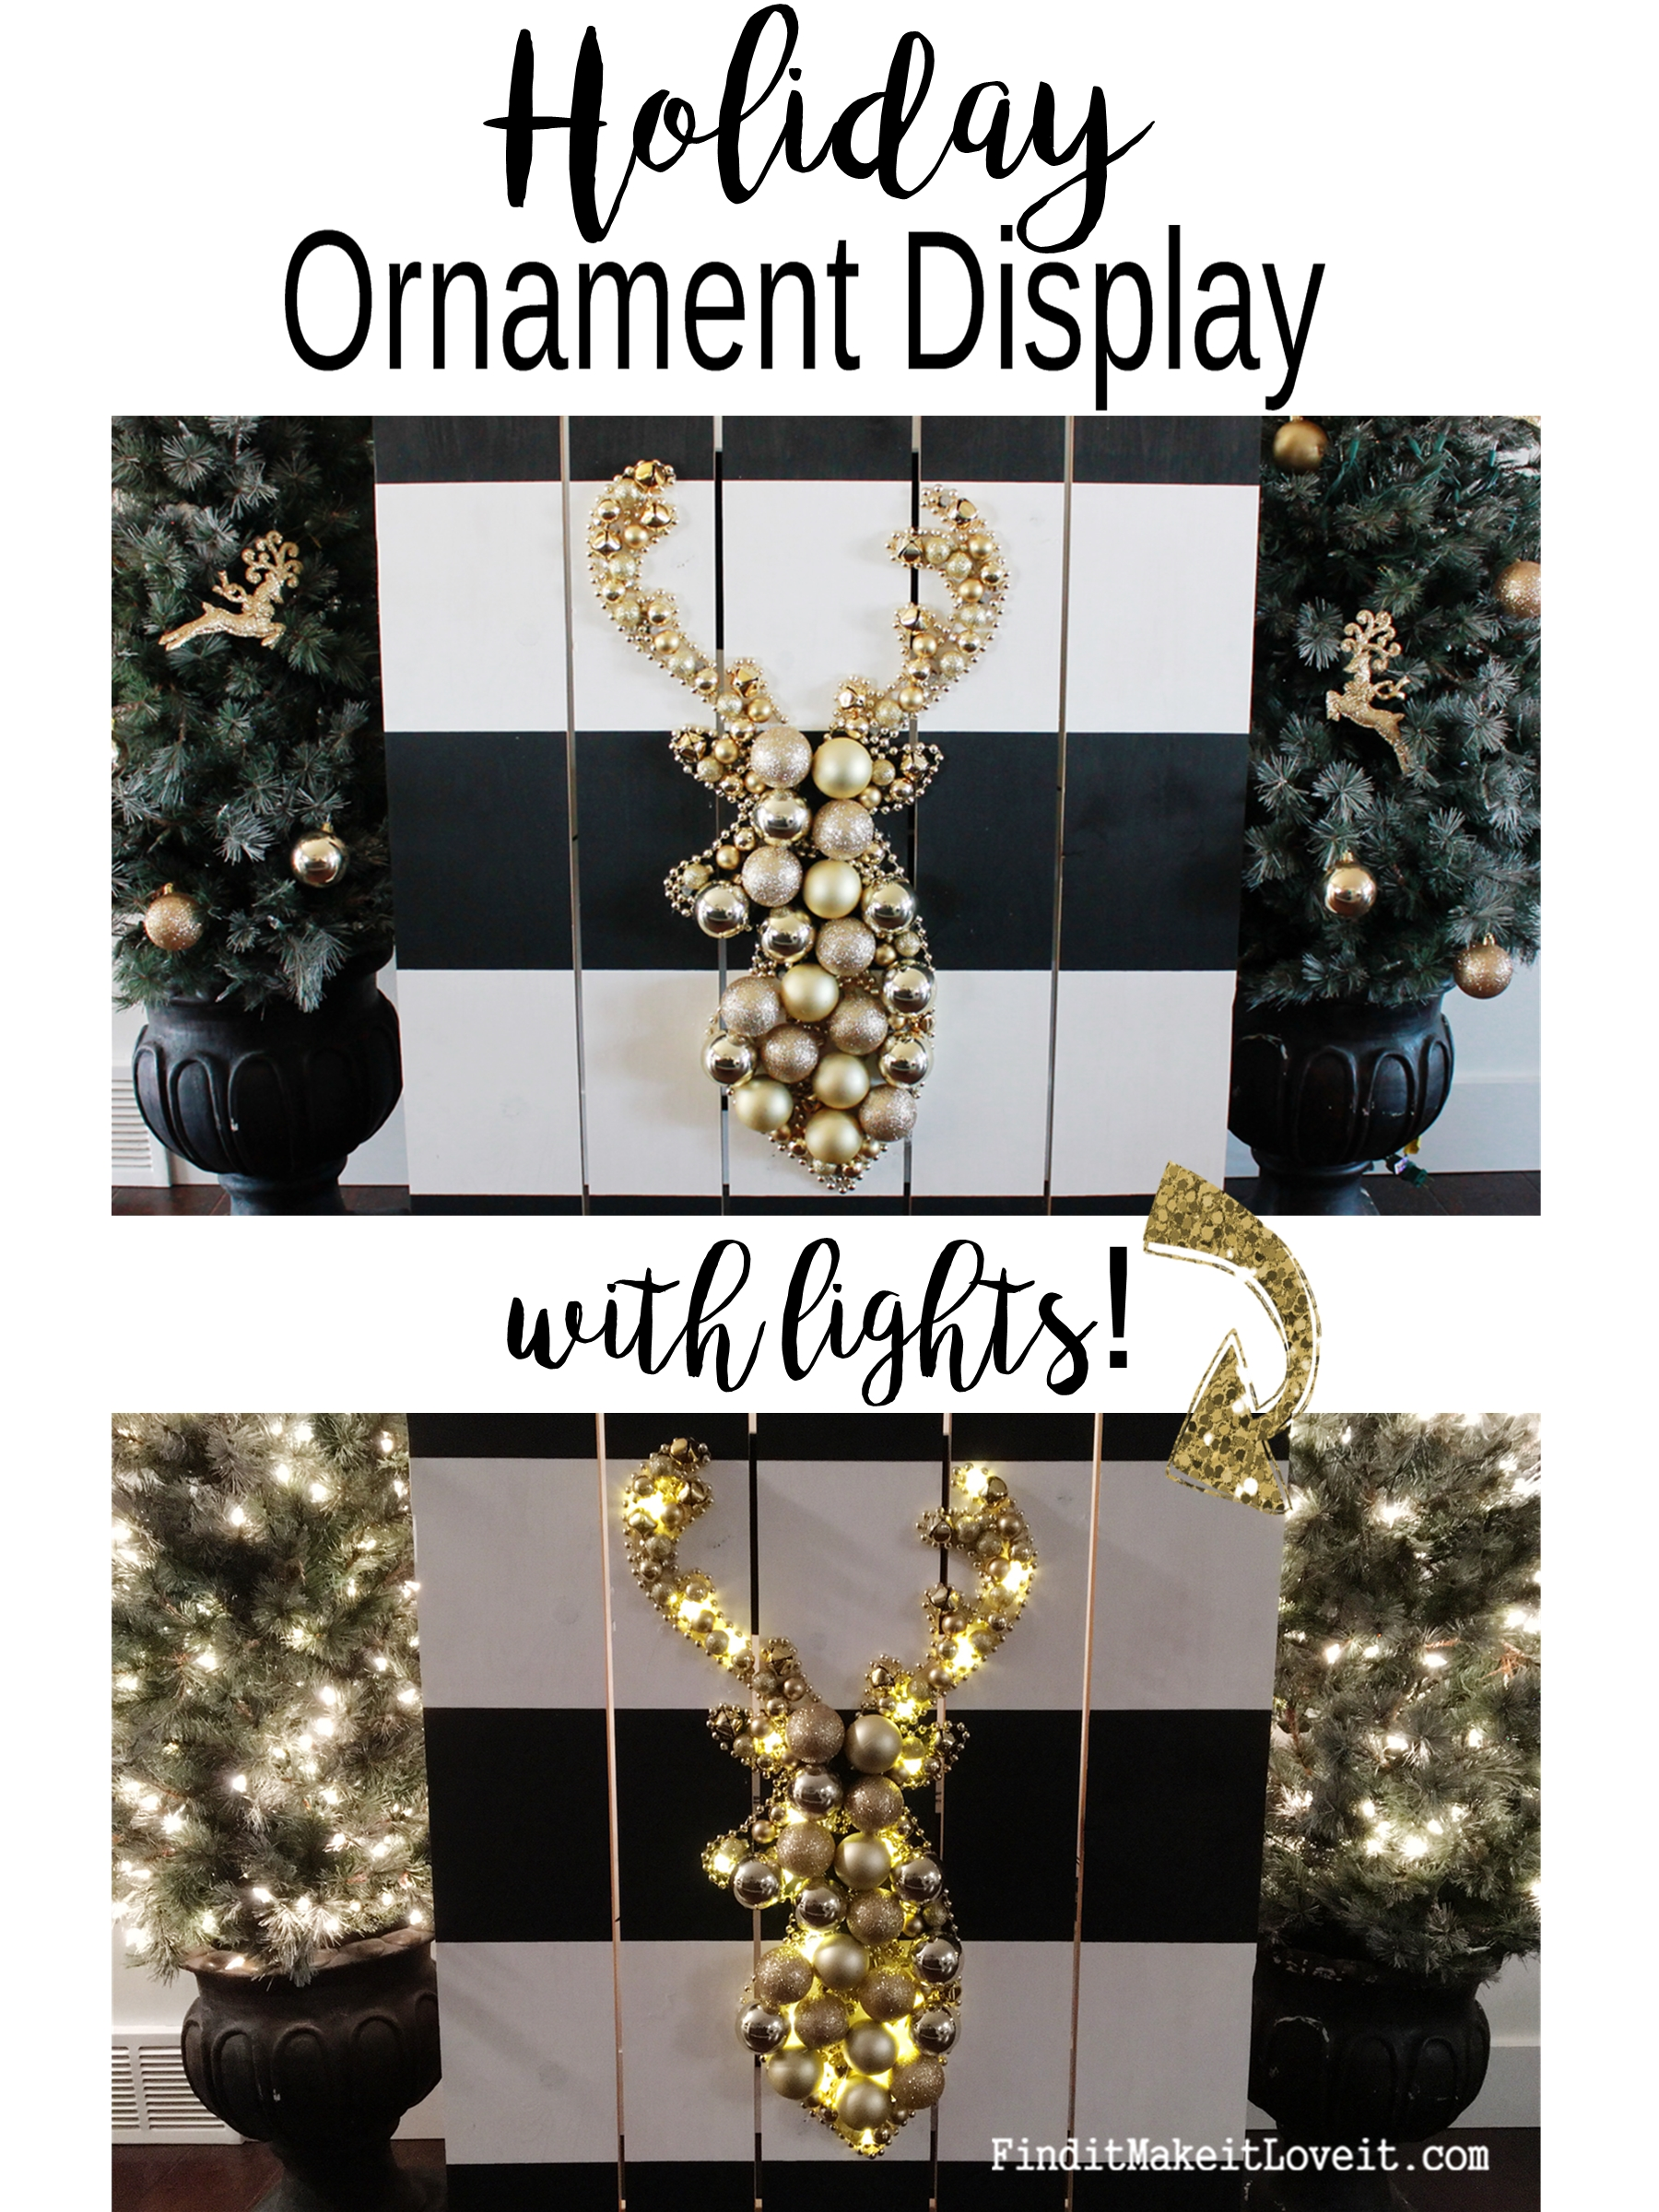 holiday-ornament-display-with-lights